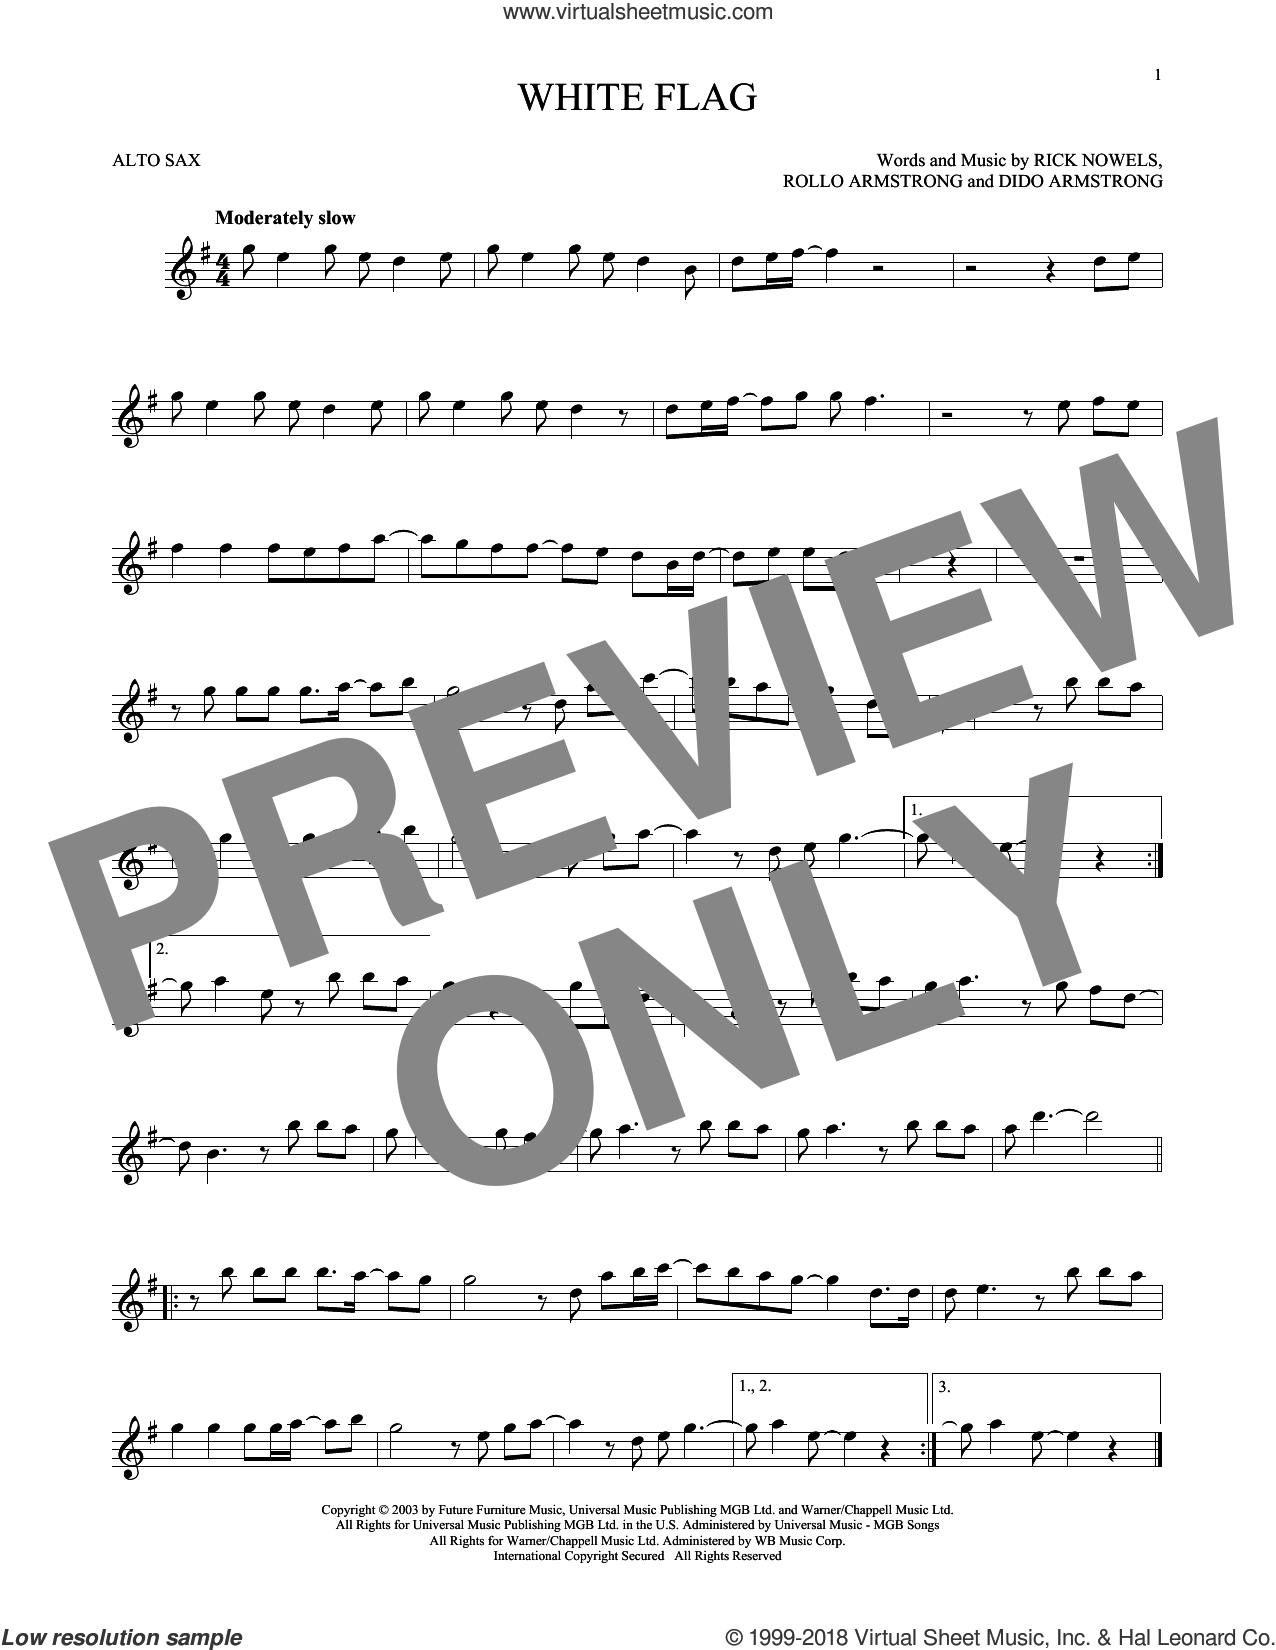 White Flag sheet music for alto saxophone solo by Rollo Armstrong